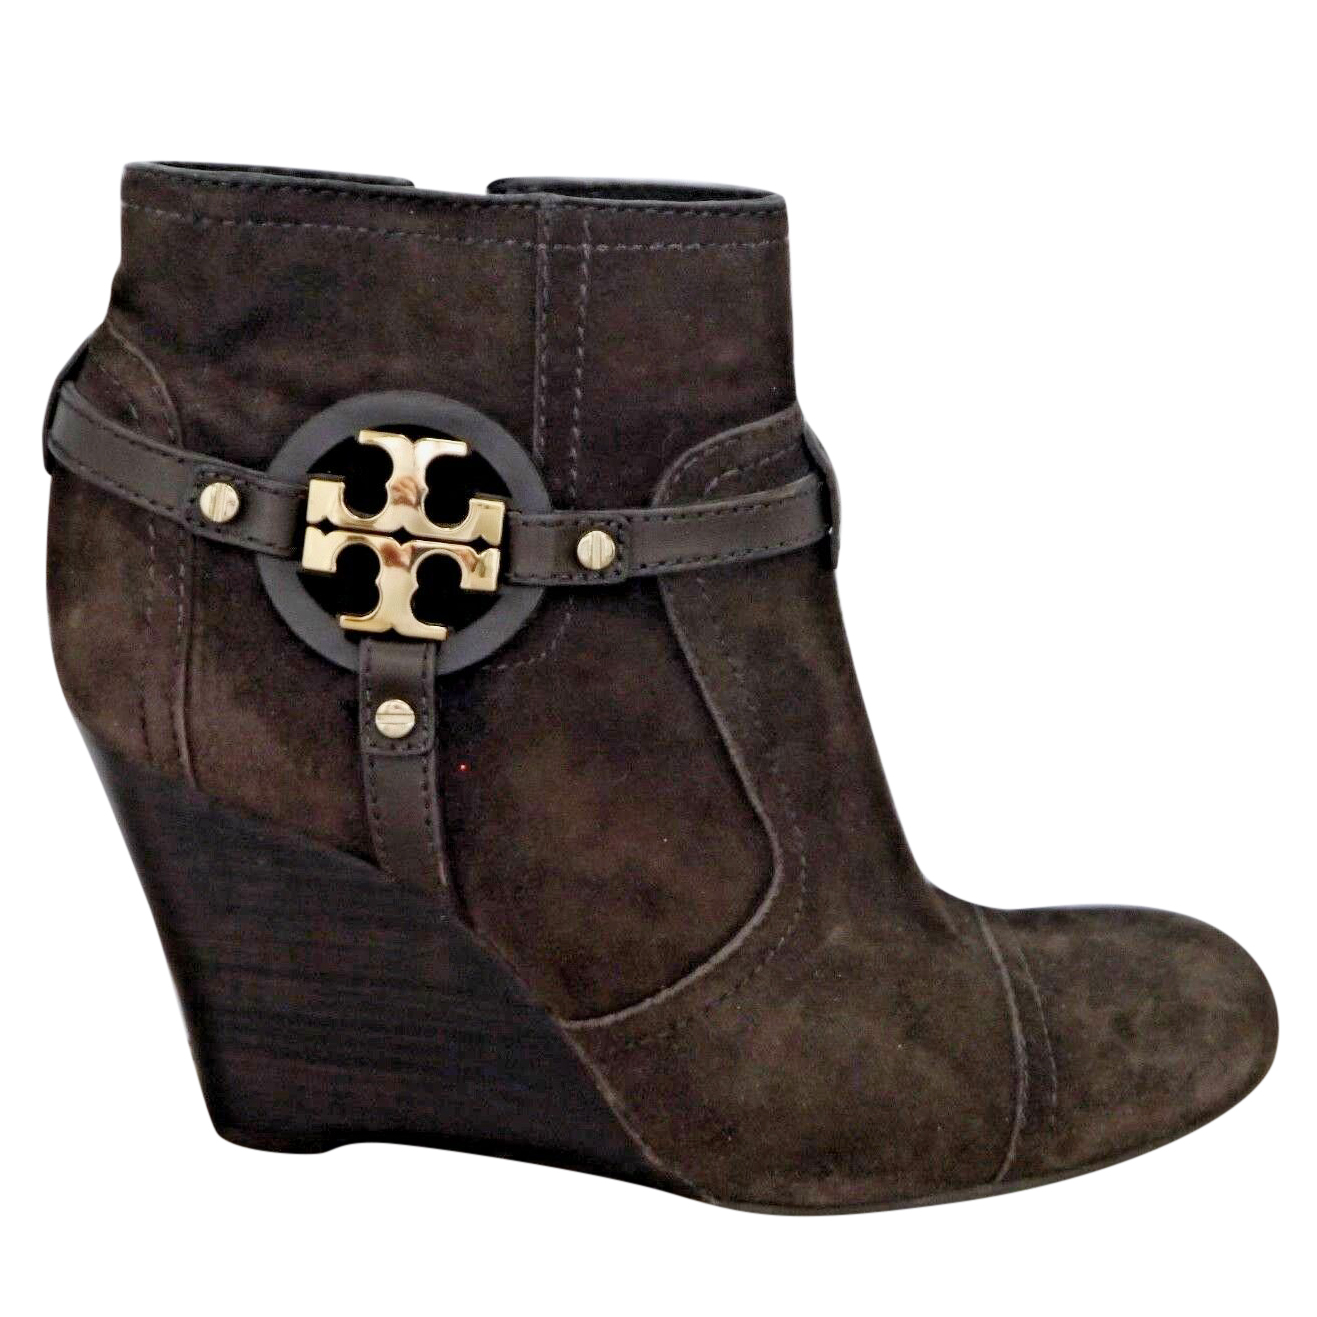 99ebbc13d83 Tory Burch Suede Ankle Boots 1